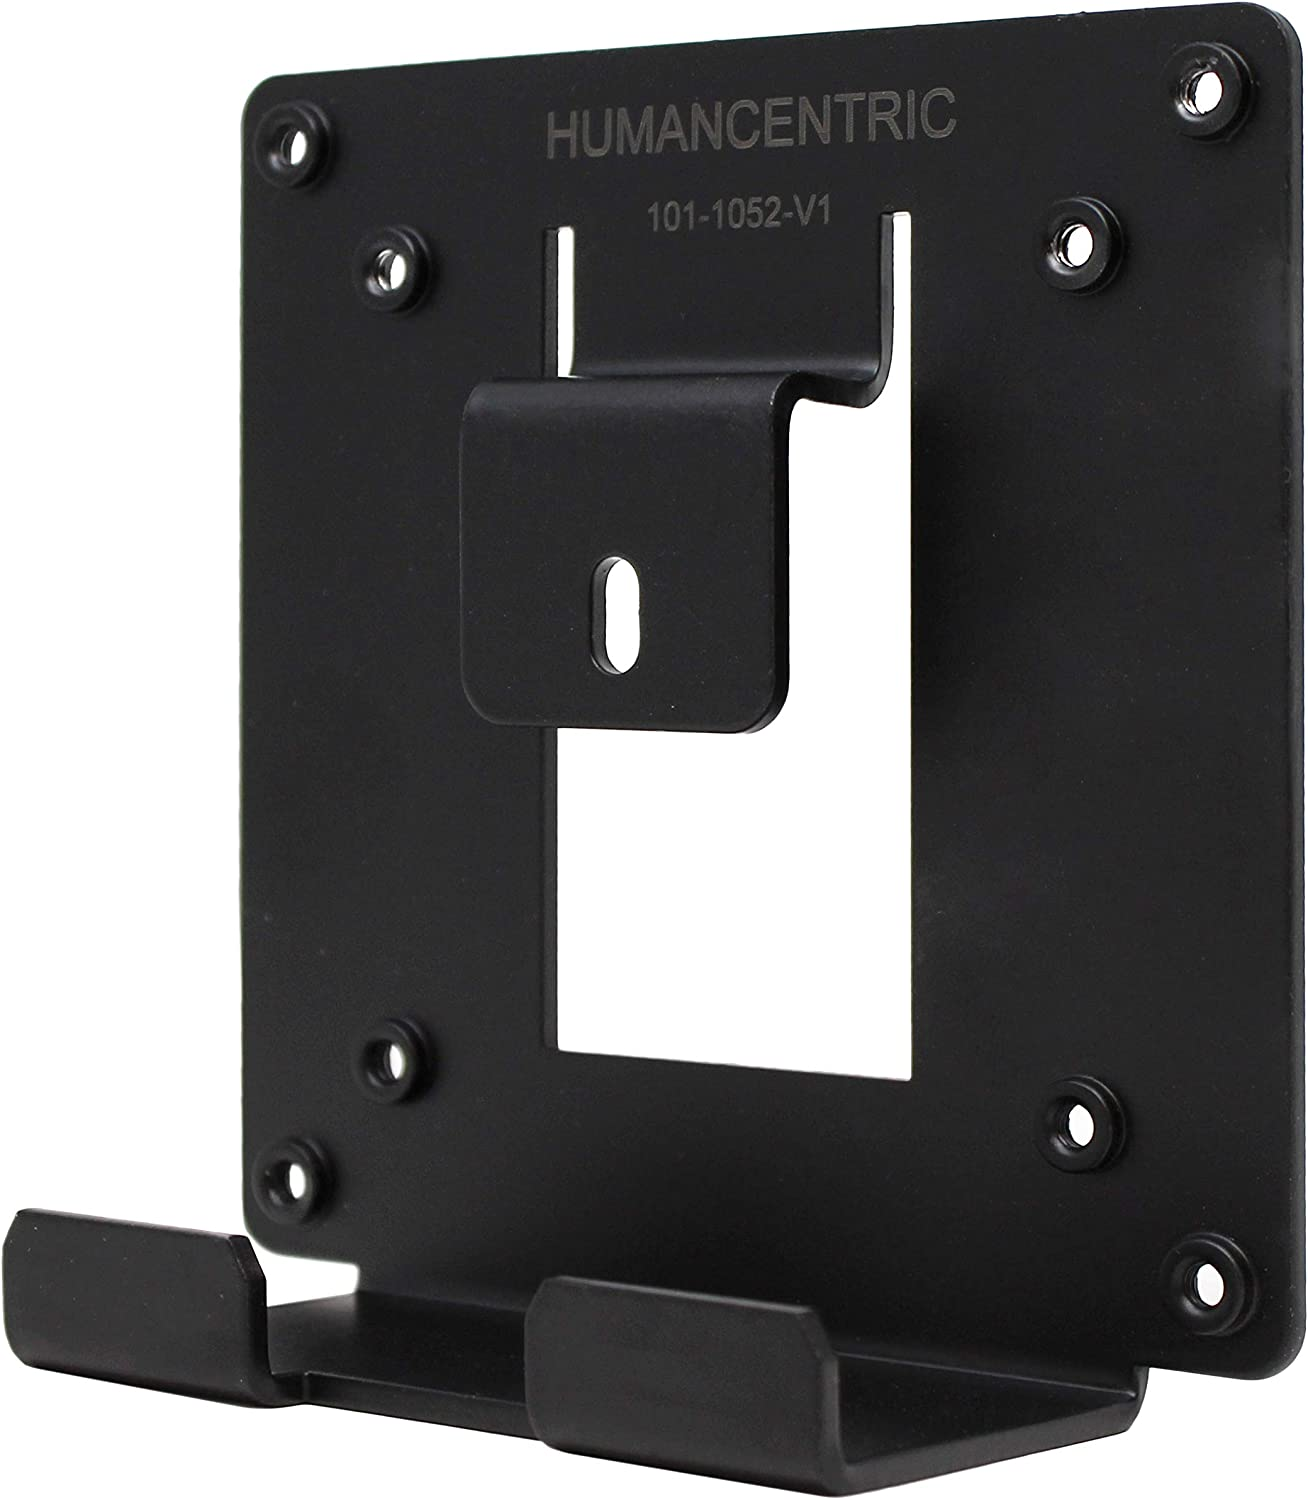 HumanCentric VESA Mount Adapter for HP Envy 27 inch Monitor